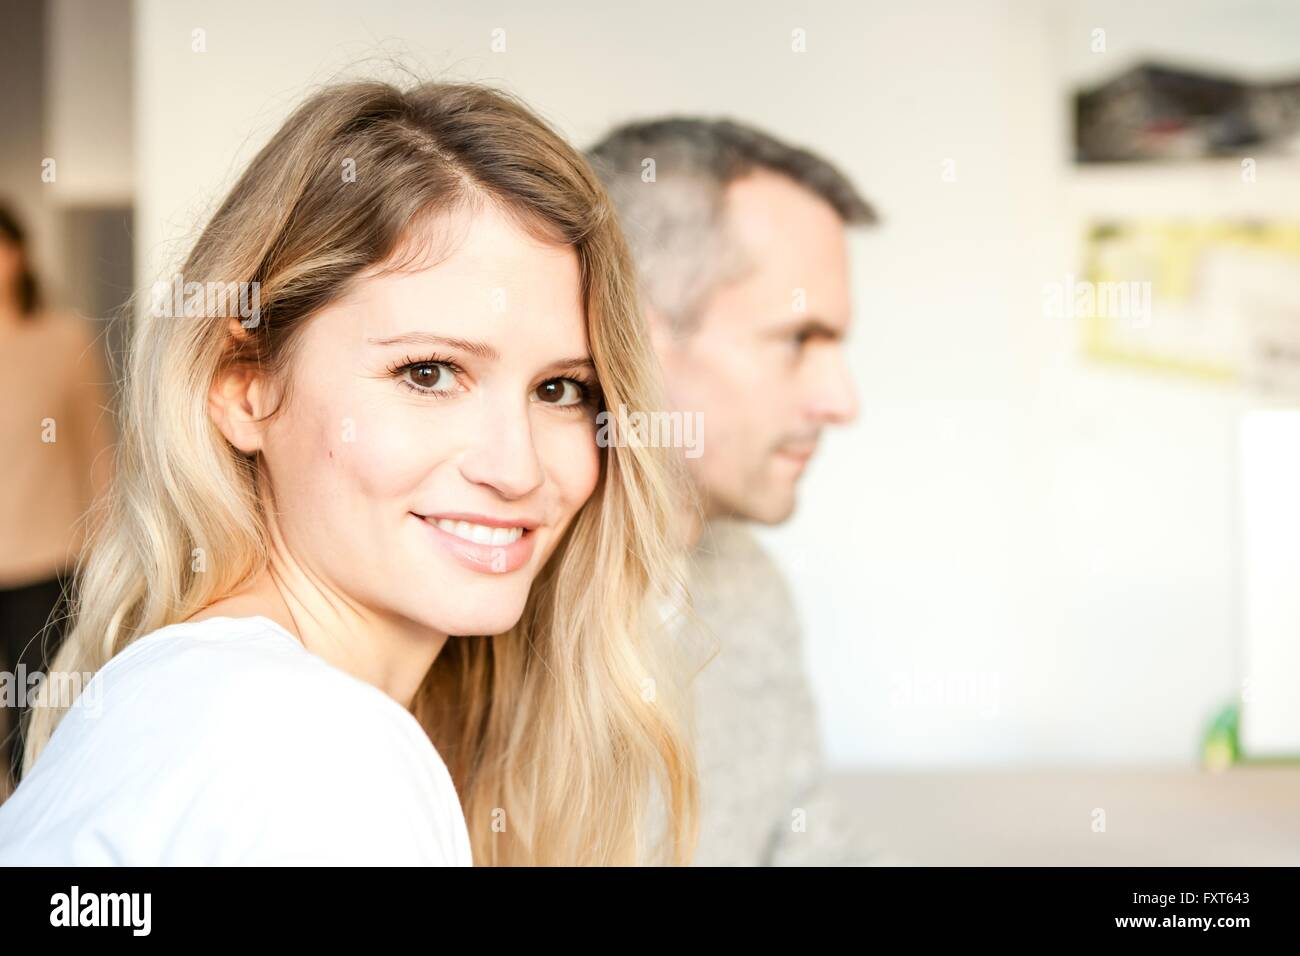 Portrait of young brown eyed woman looking at camera smiling - Stock Image